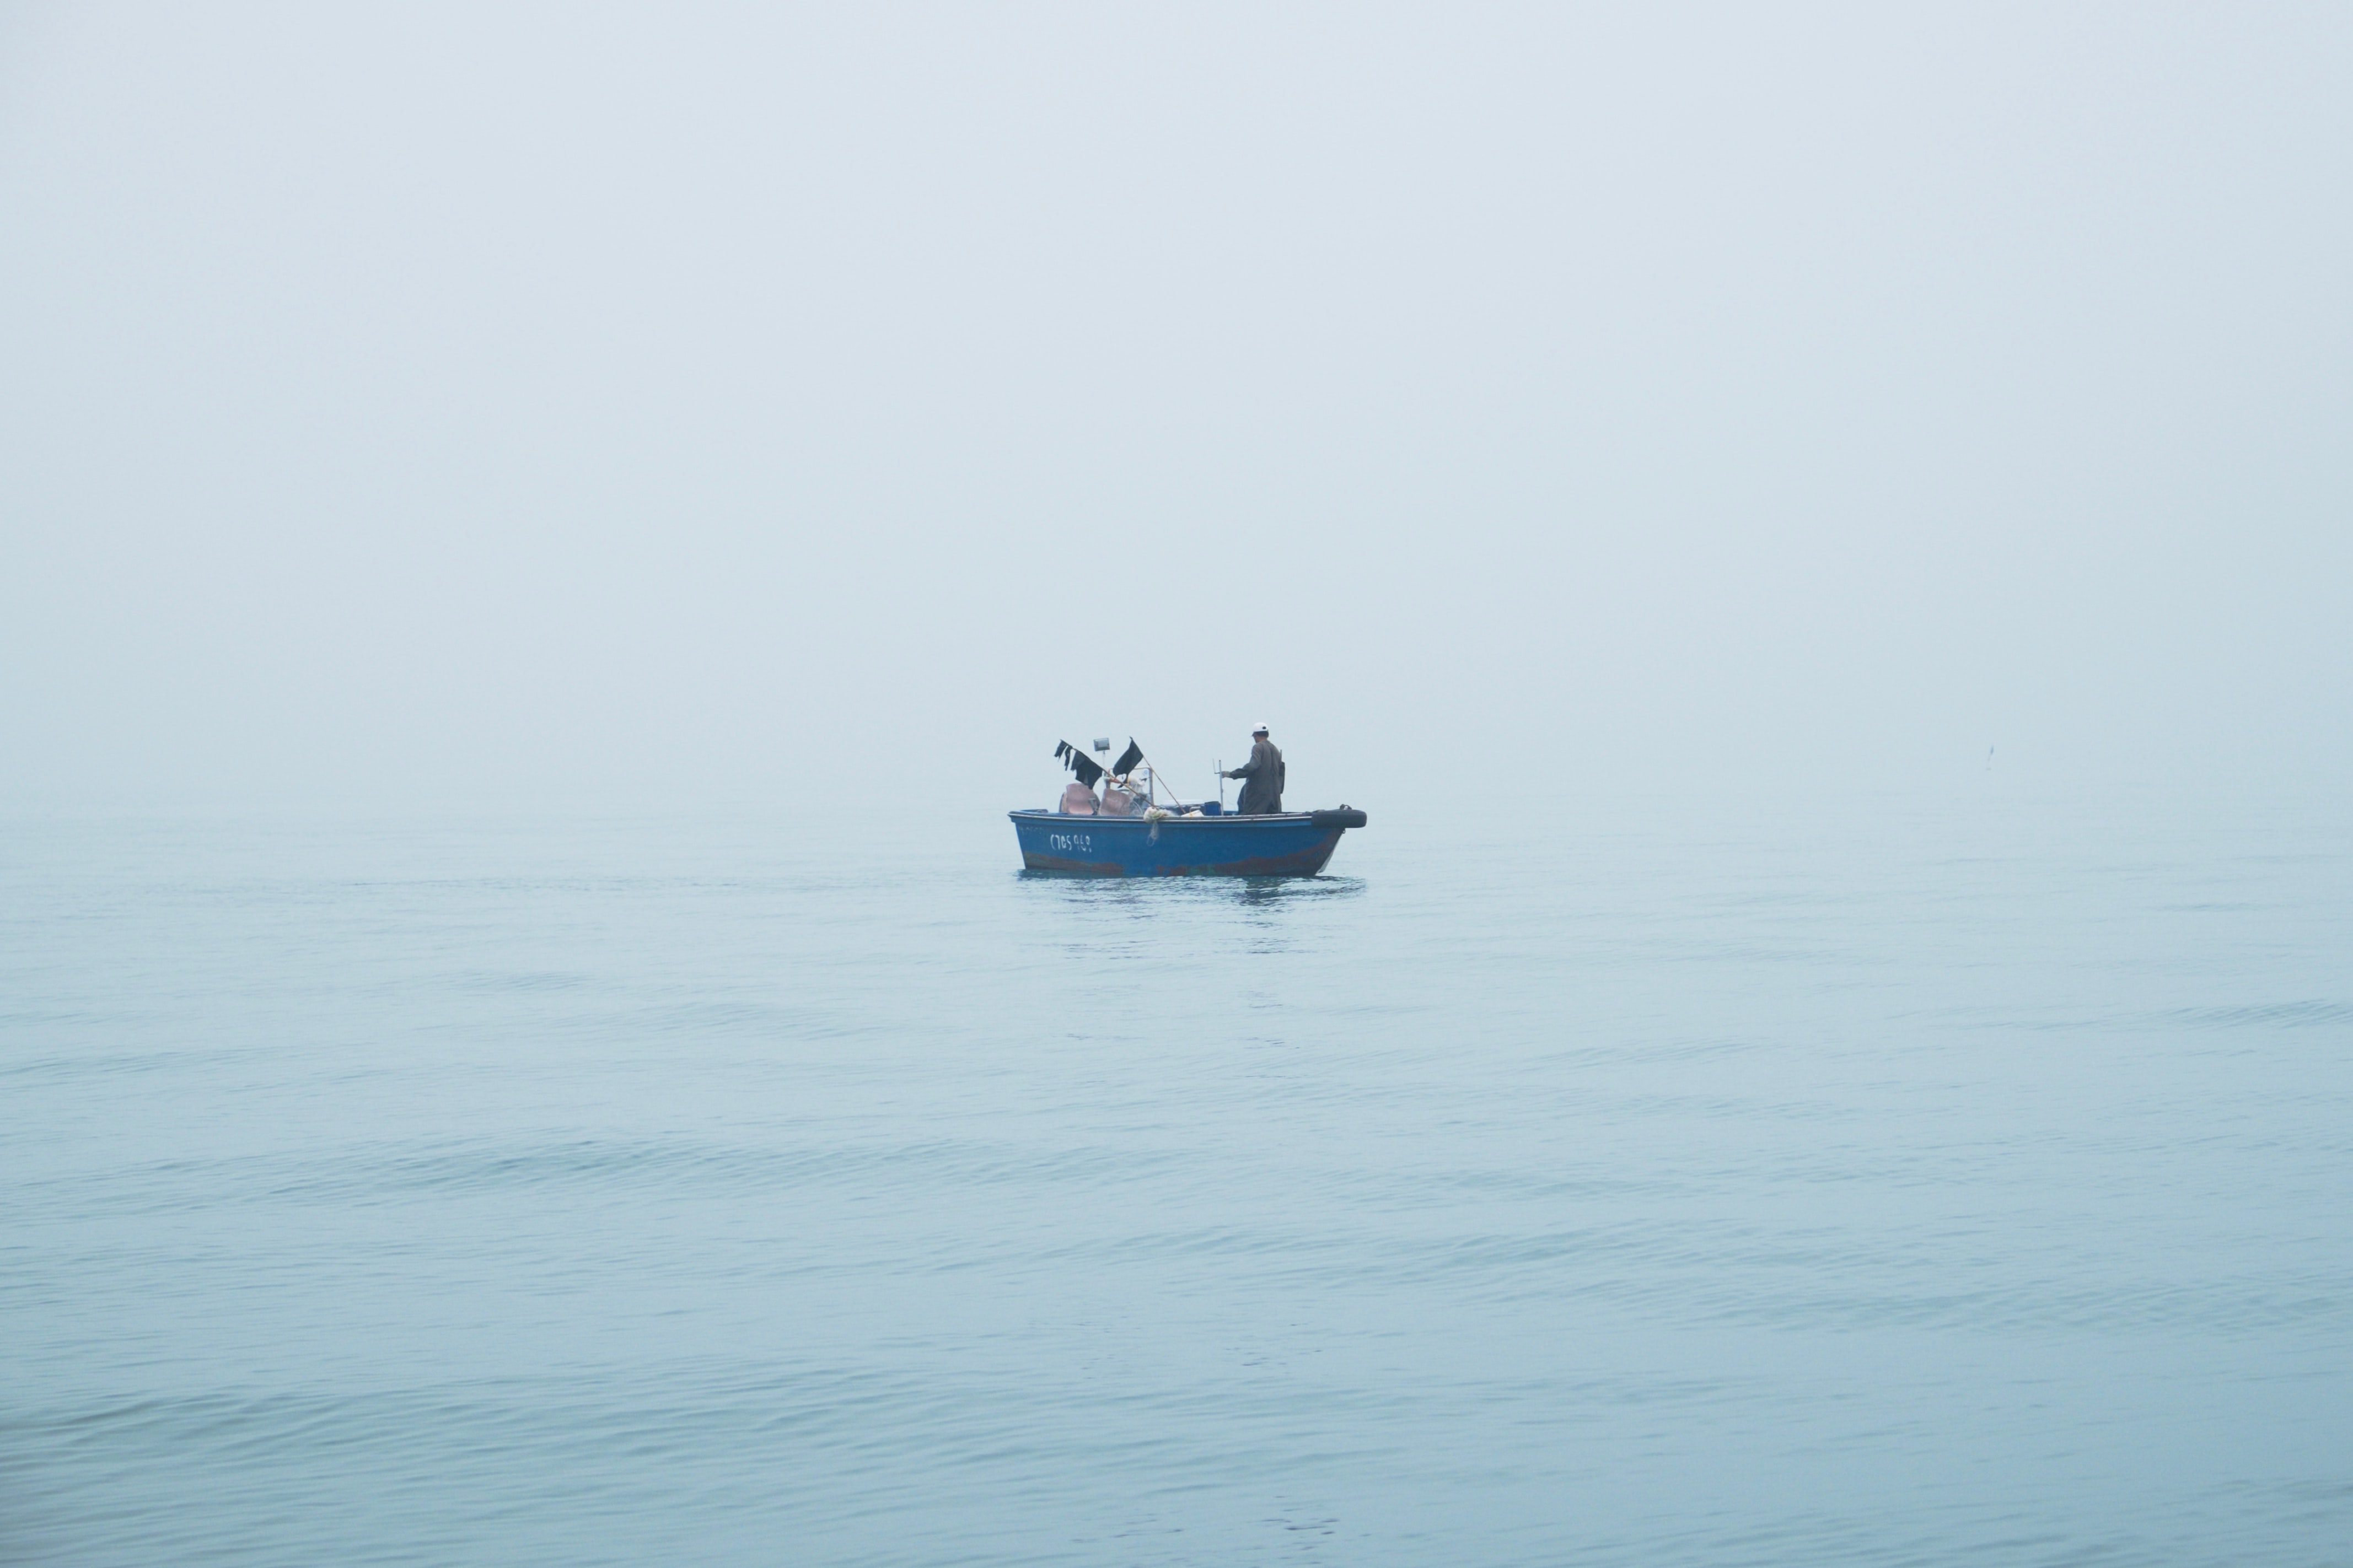 people riding blue boat on body of water